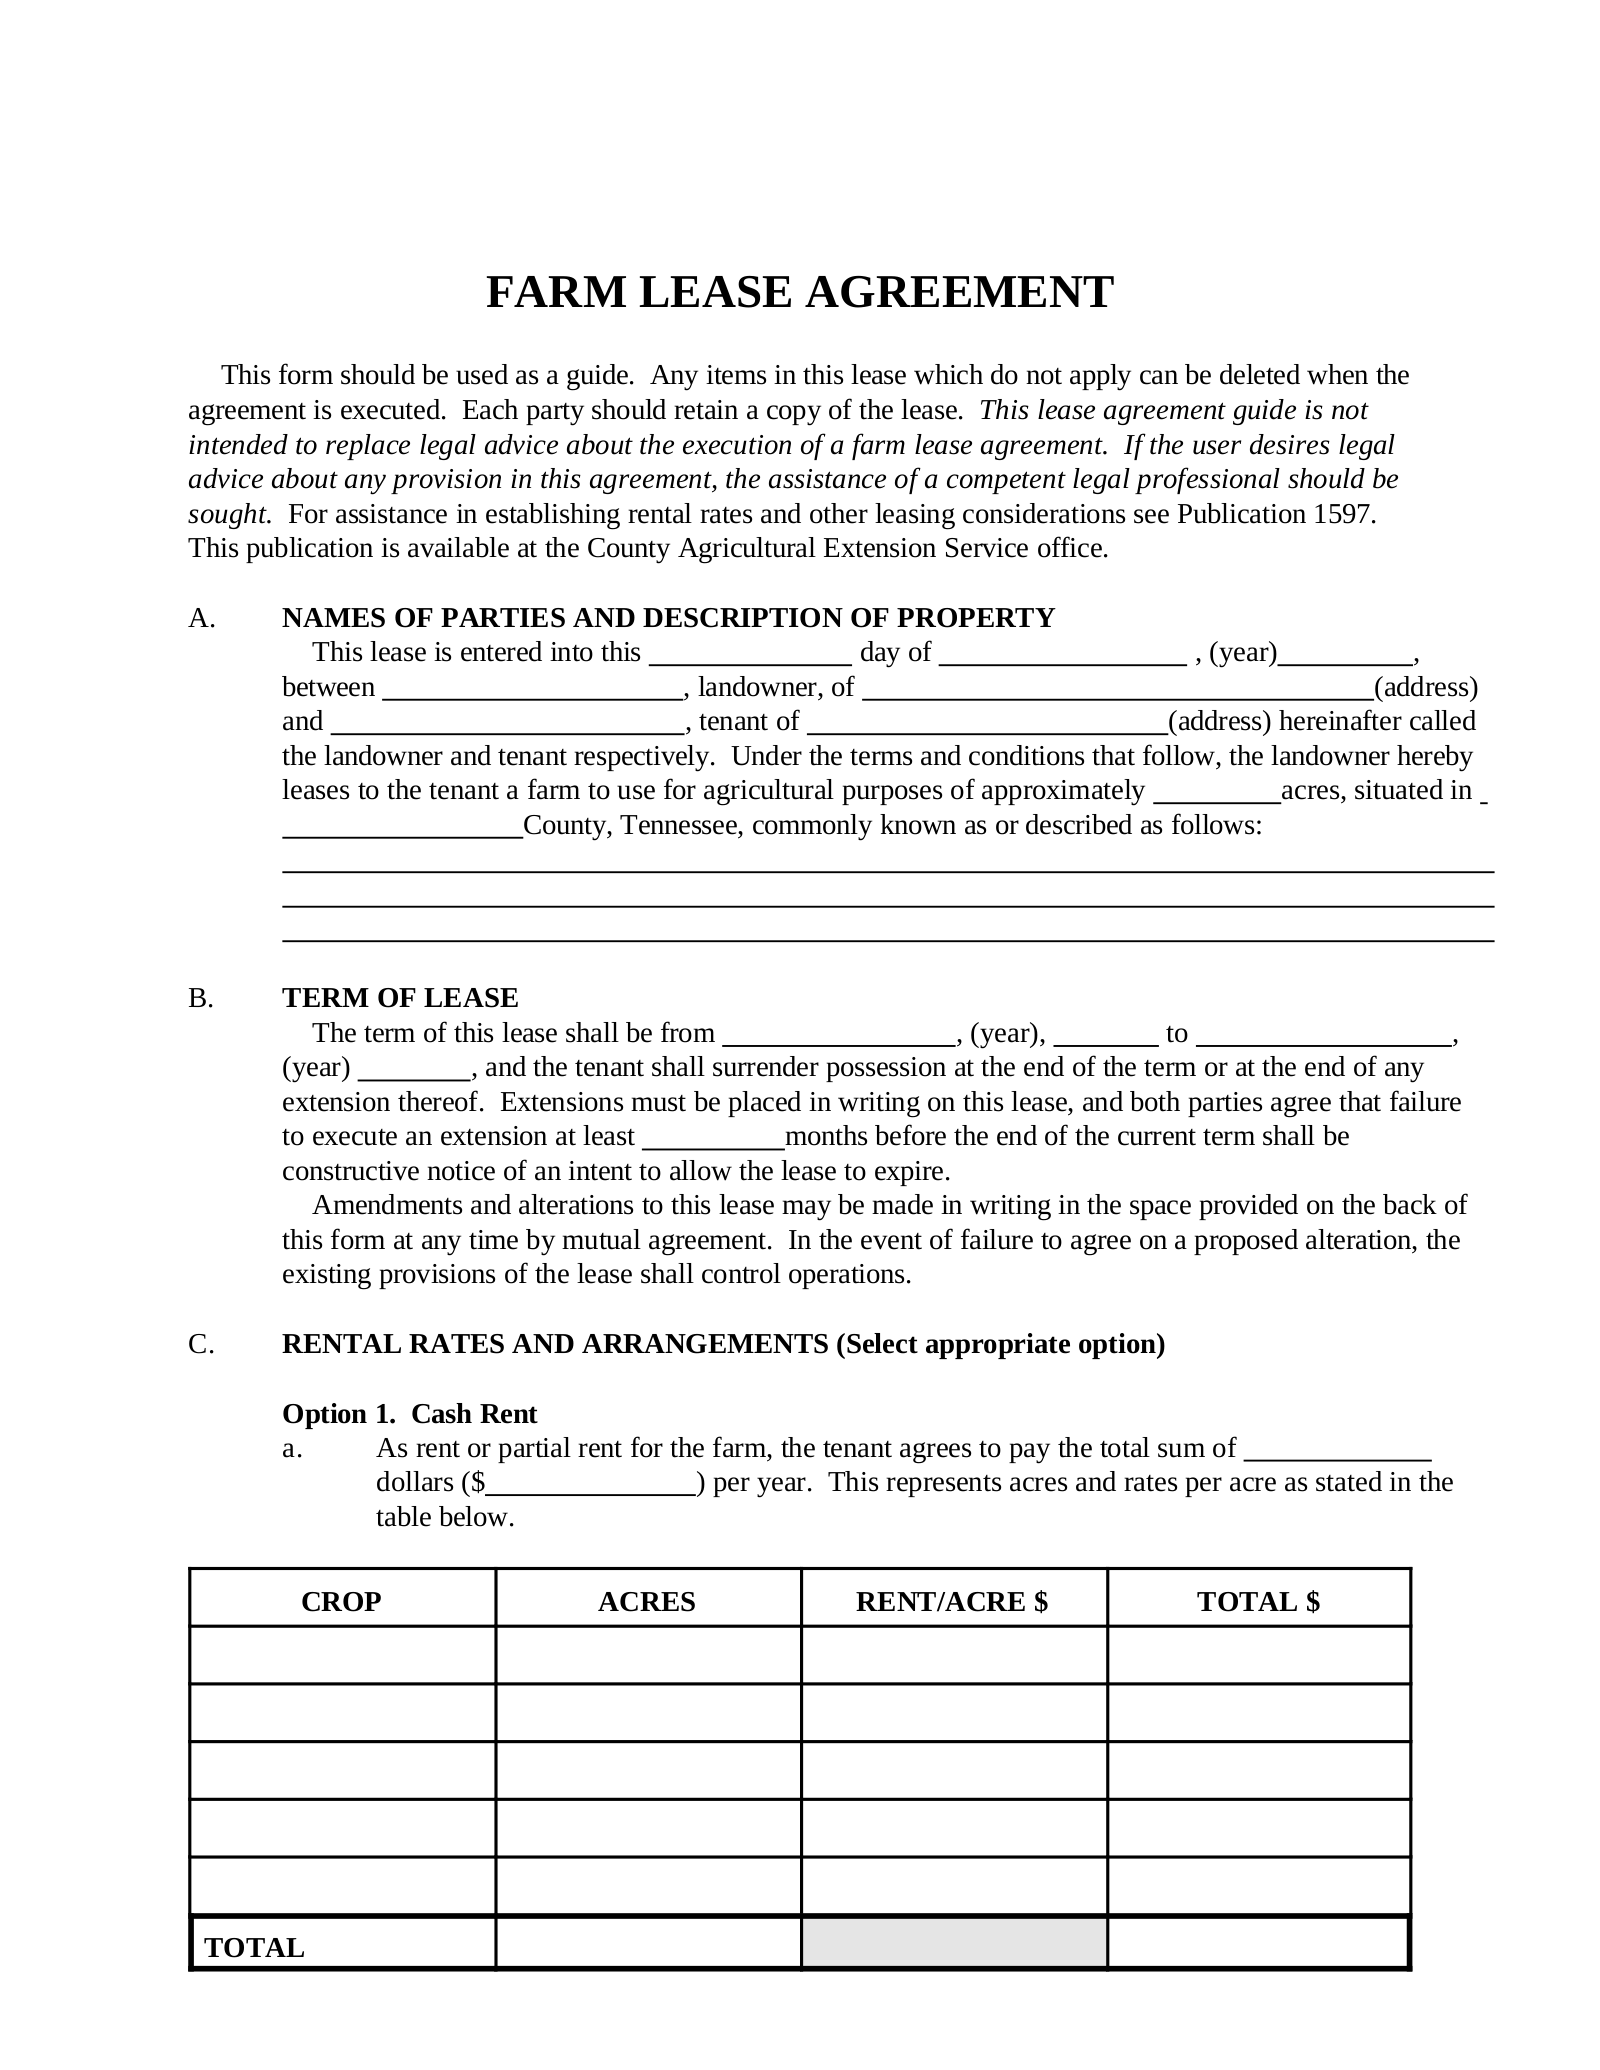 Land Rental Agreement Template from eforms.com